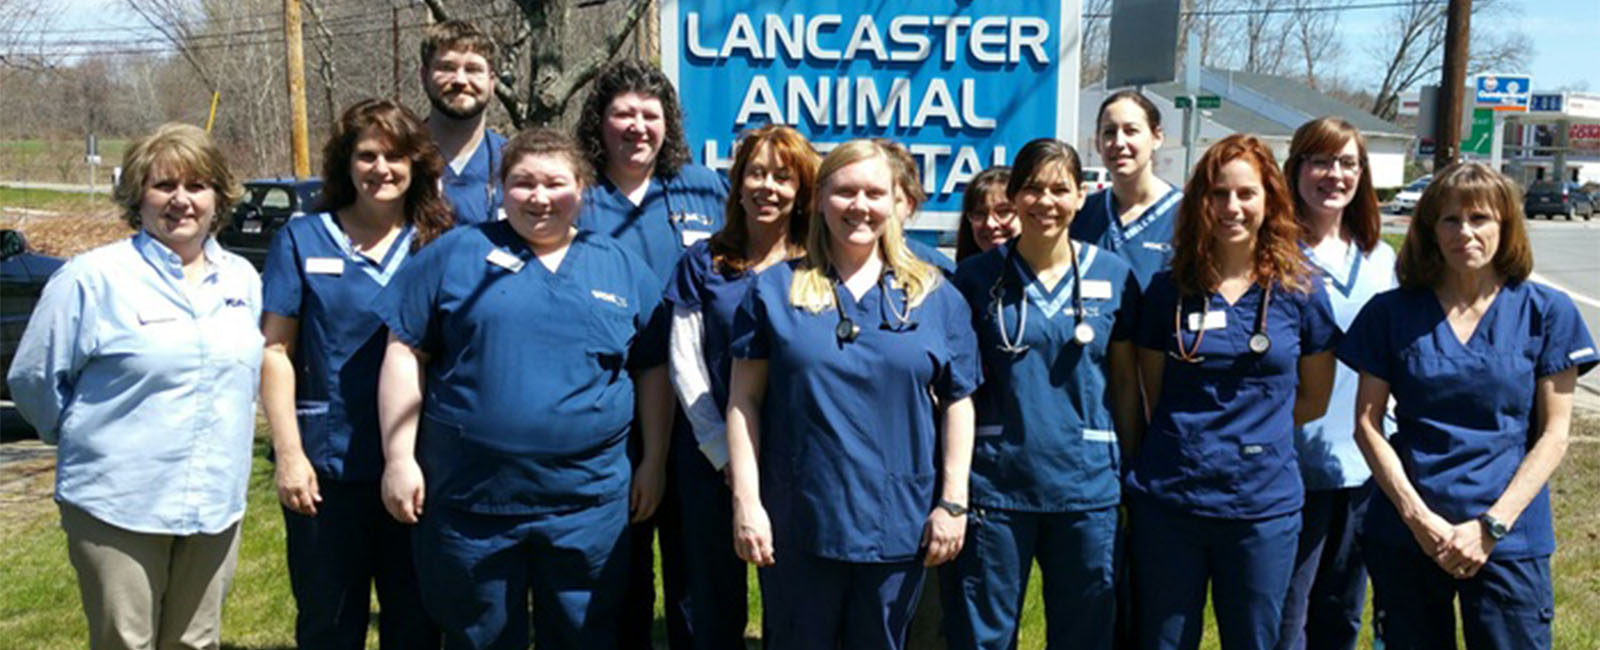 Homepage Team Picture of VCA Lancaster Animal Hospital